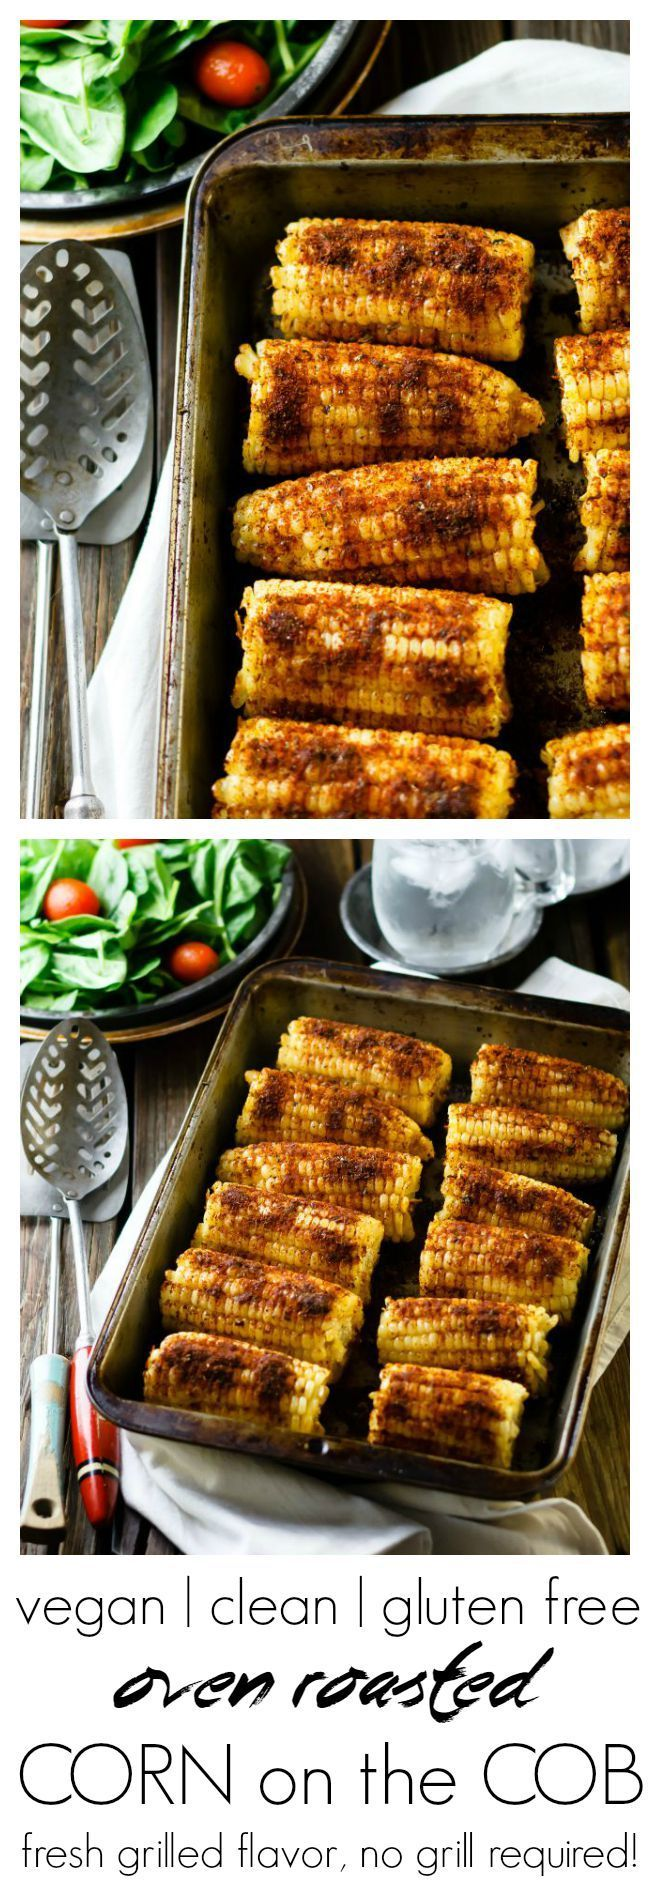 Oven Roasted Corn on the Cob | fuss-free, no grilling required | #vegan #cleaneating #glutenfree #healthy #recipe